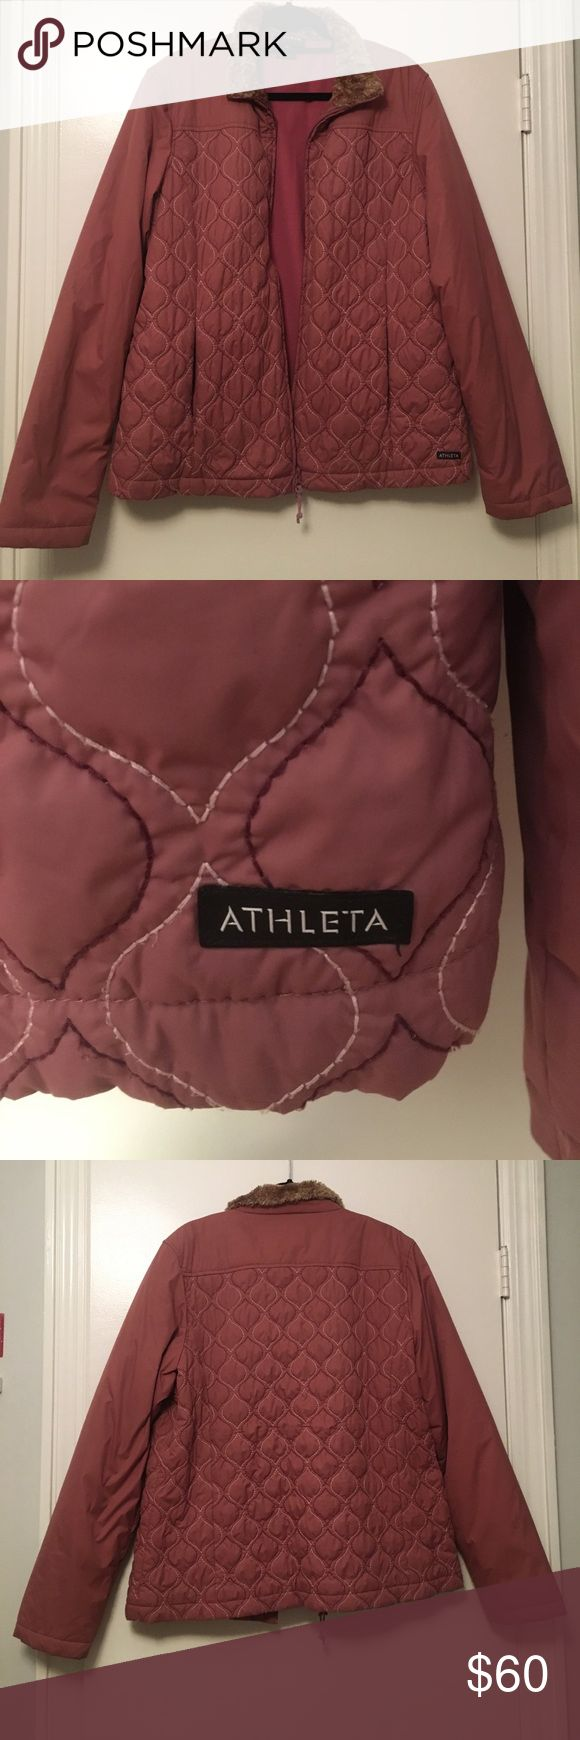 Athleta Light Puffer Coat‼️ Athleta Pink Puffer coat with faux fur trim around the collar. Runs true to size, lightweight and fleece lined Athleta Jackets & Coats Puffers